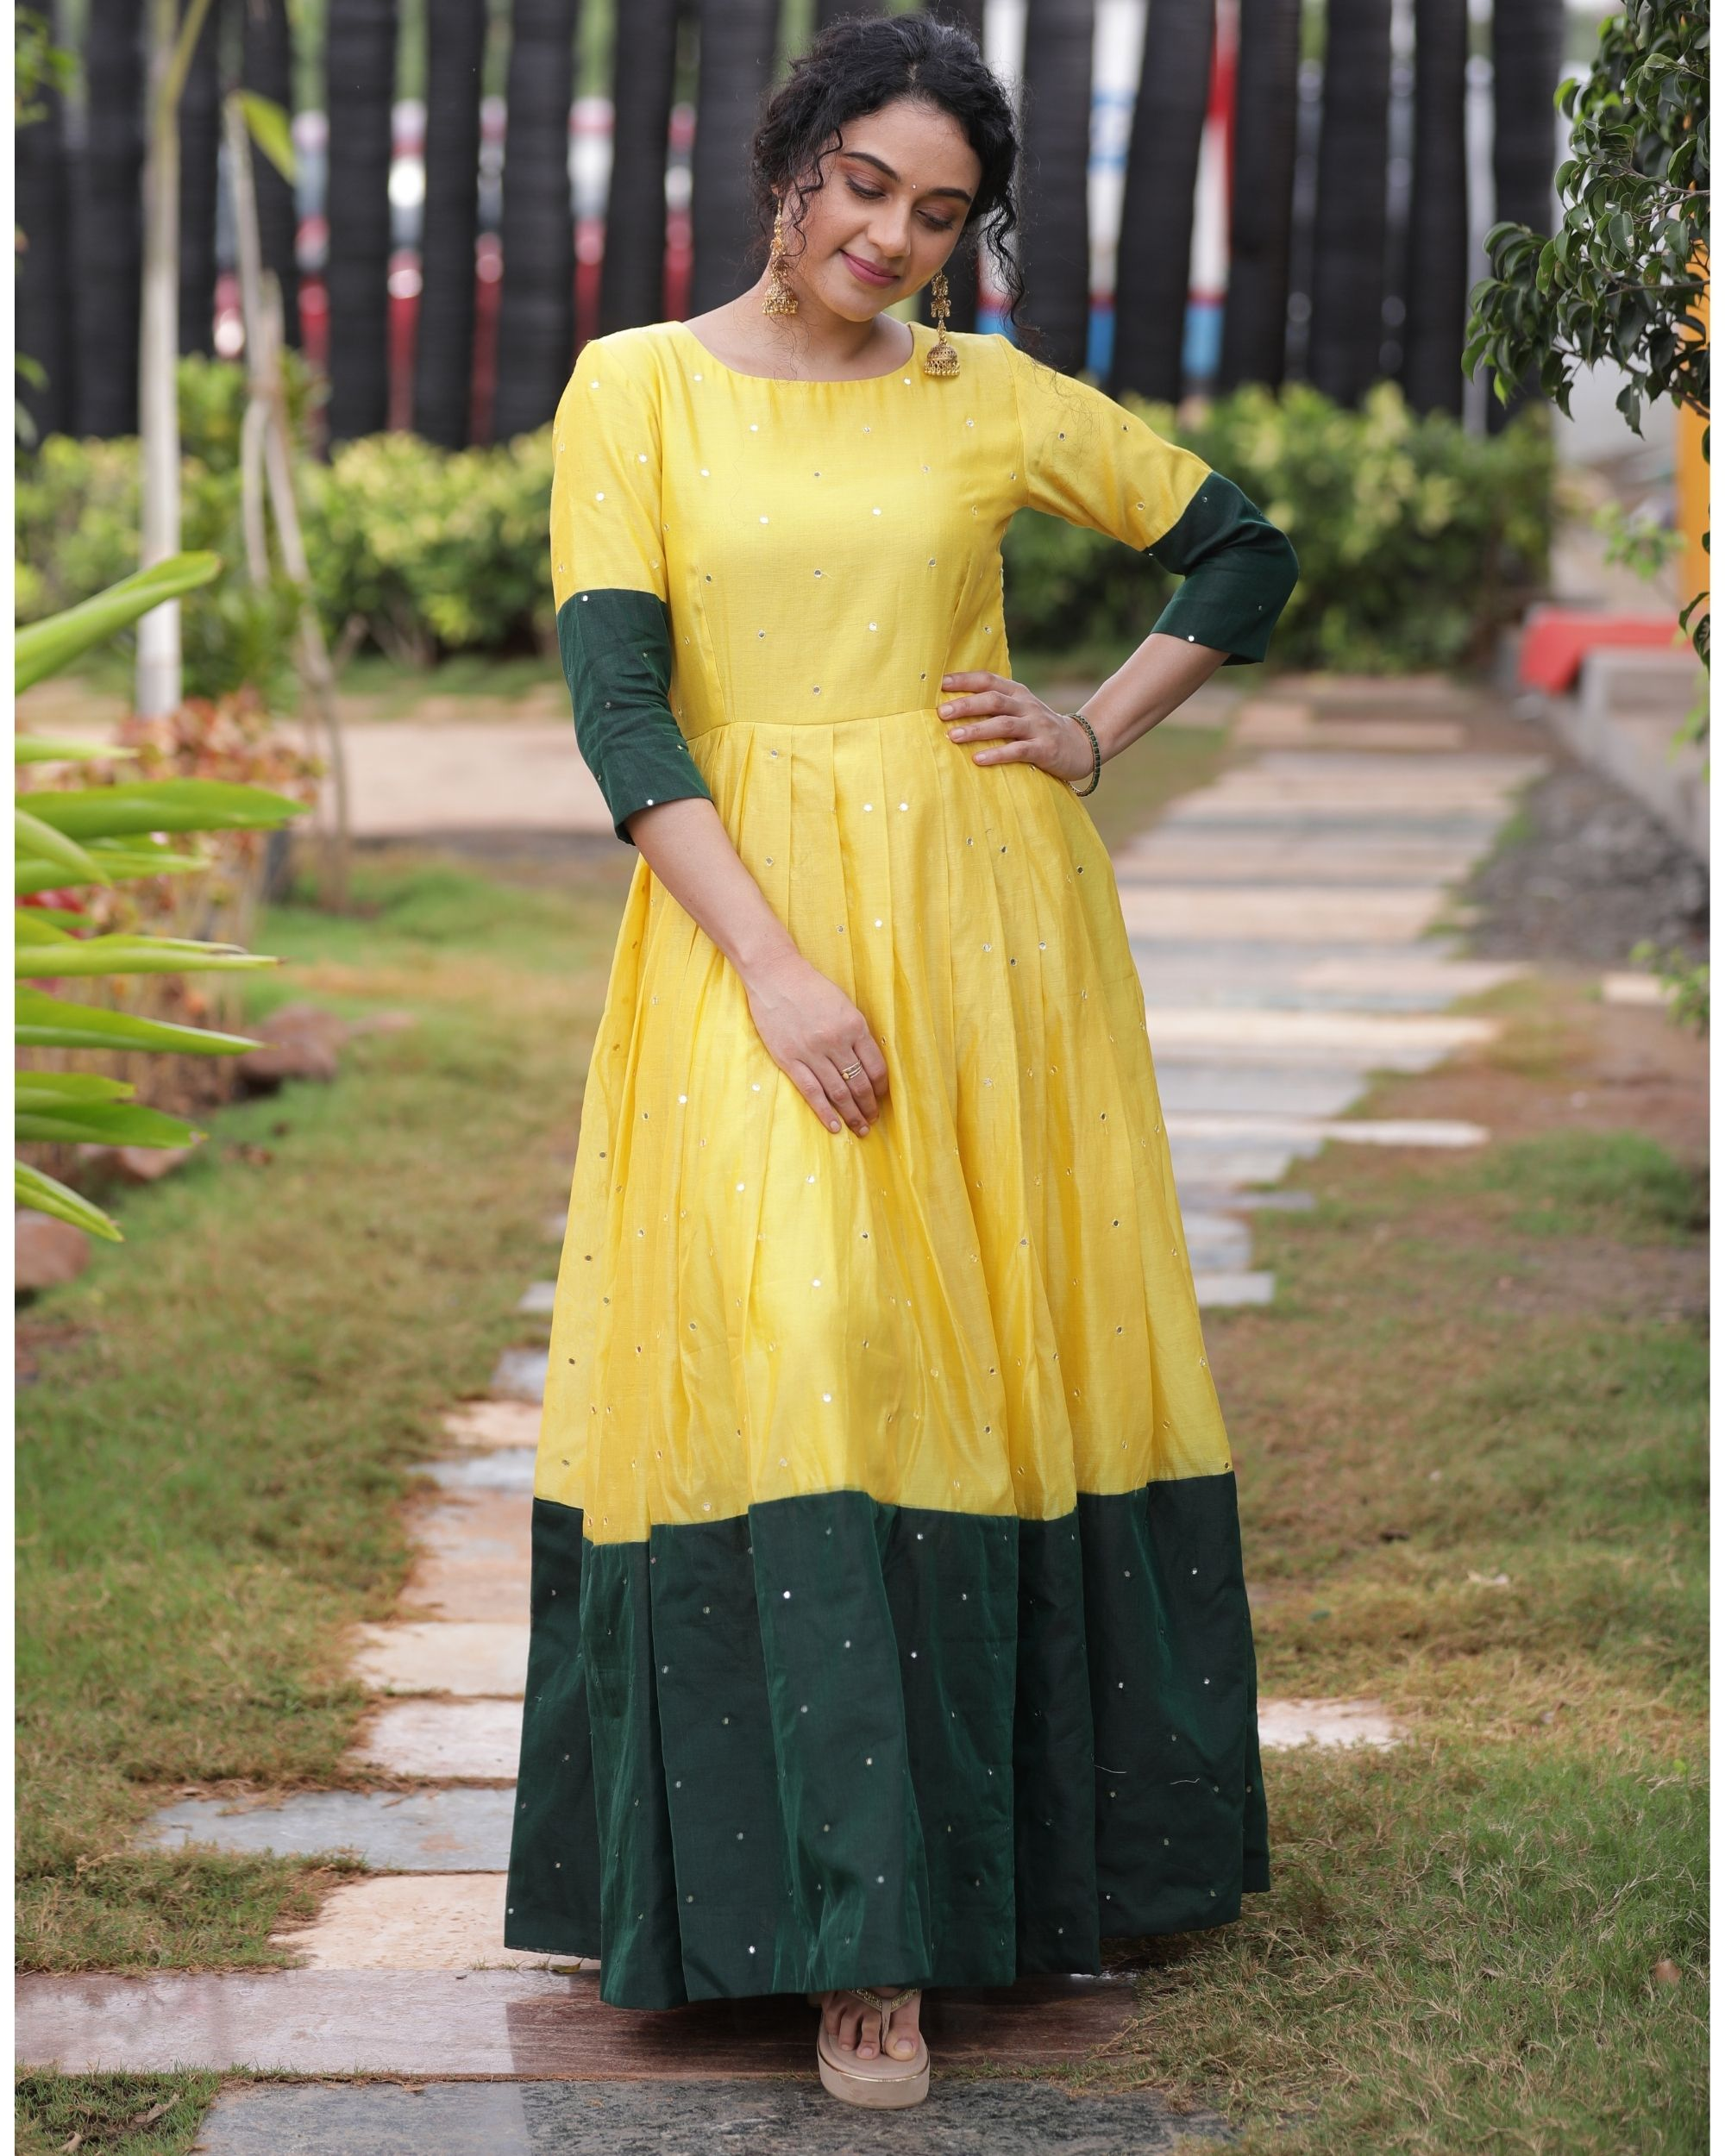 Yellow and green mirror dress